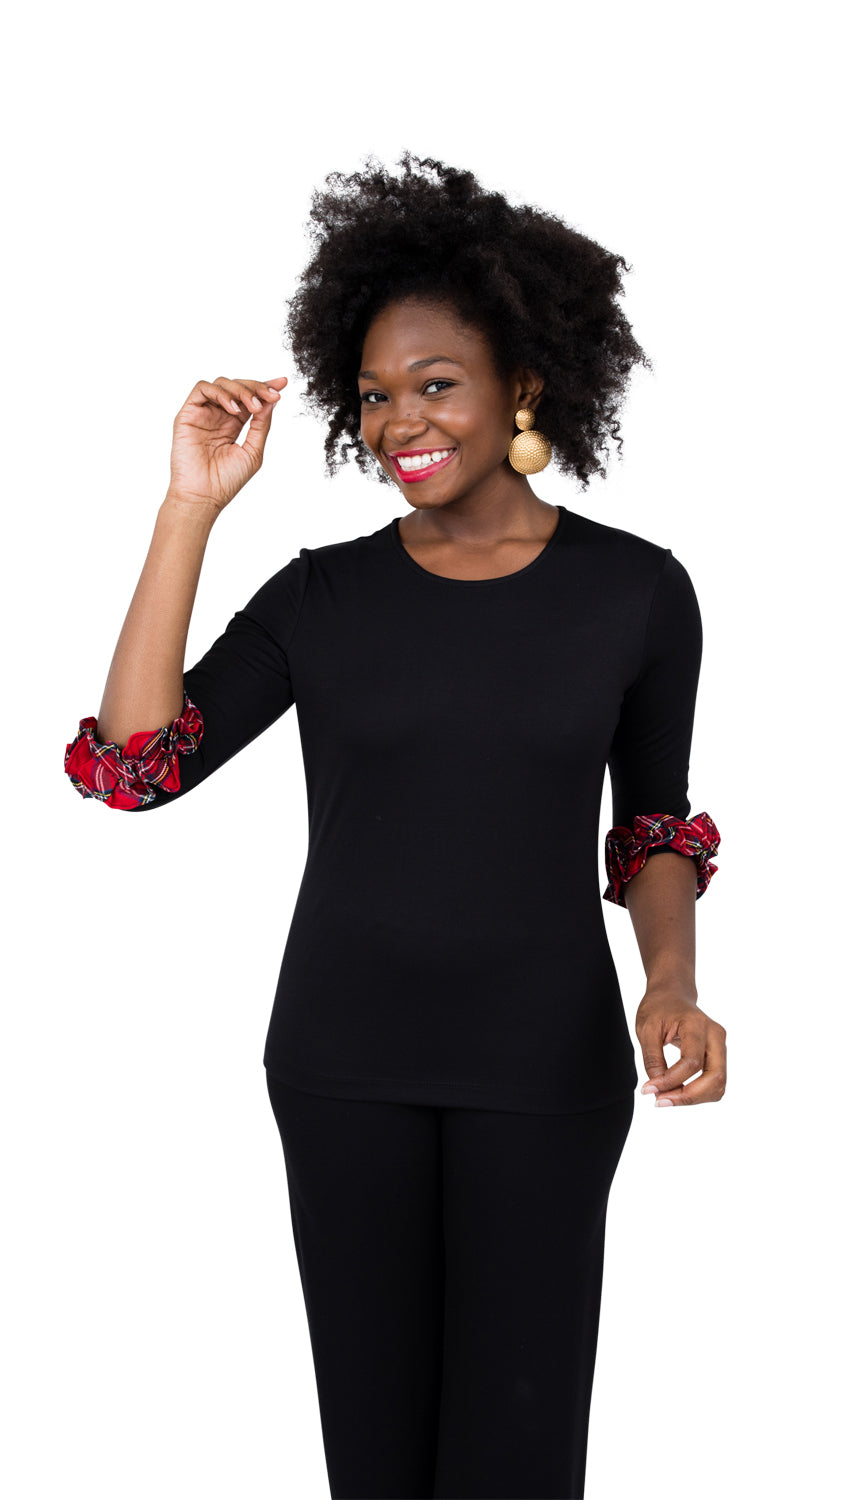 Caroline Top - Black With Red Plaid- FINAL SALE